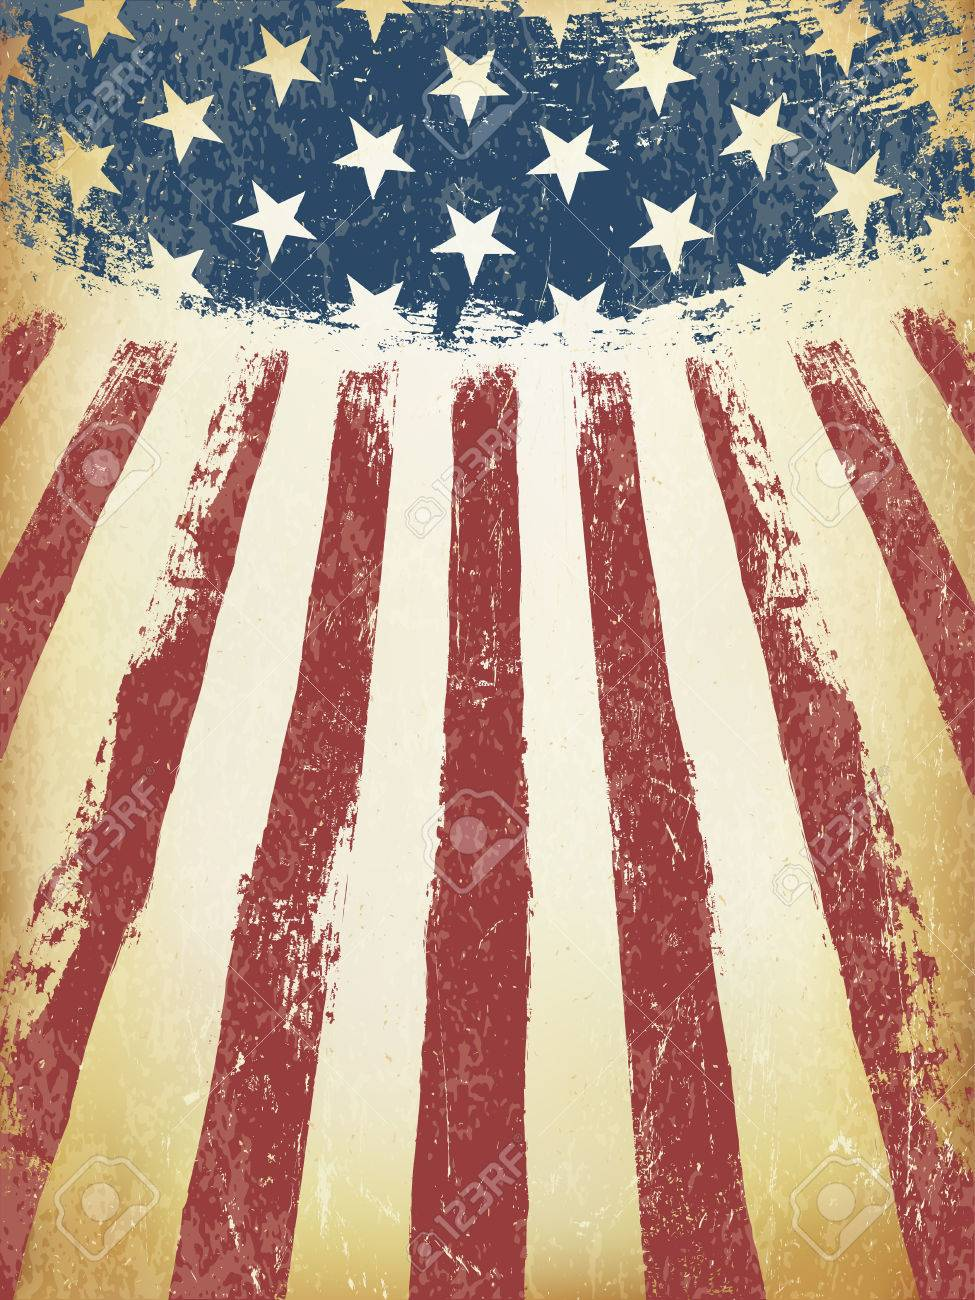 grunge aged american flag background vector template royalty free